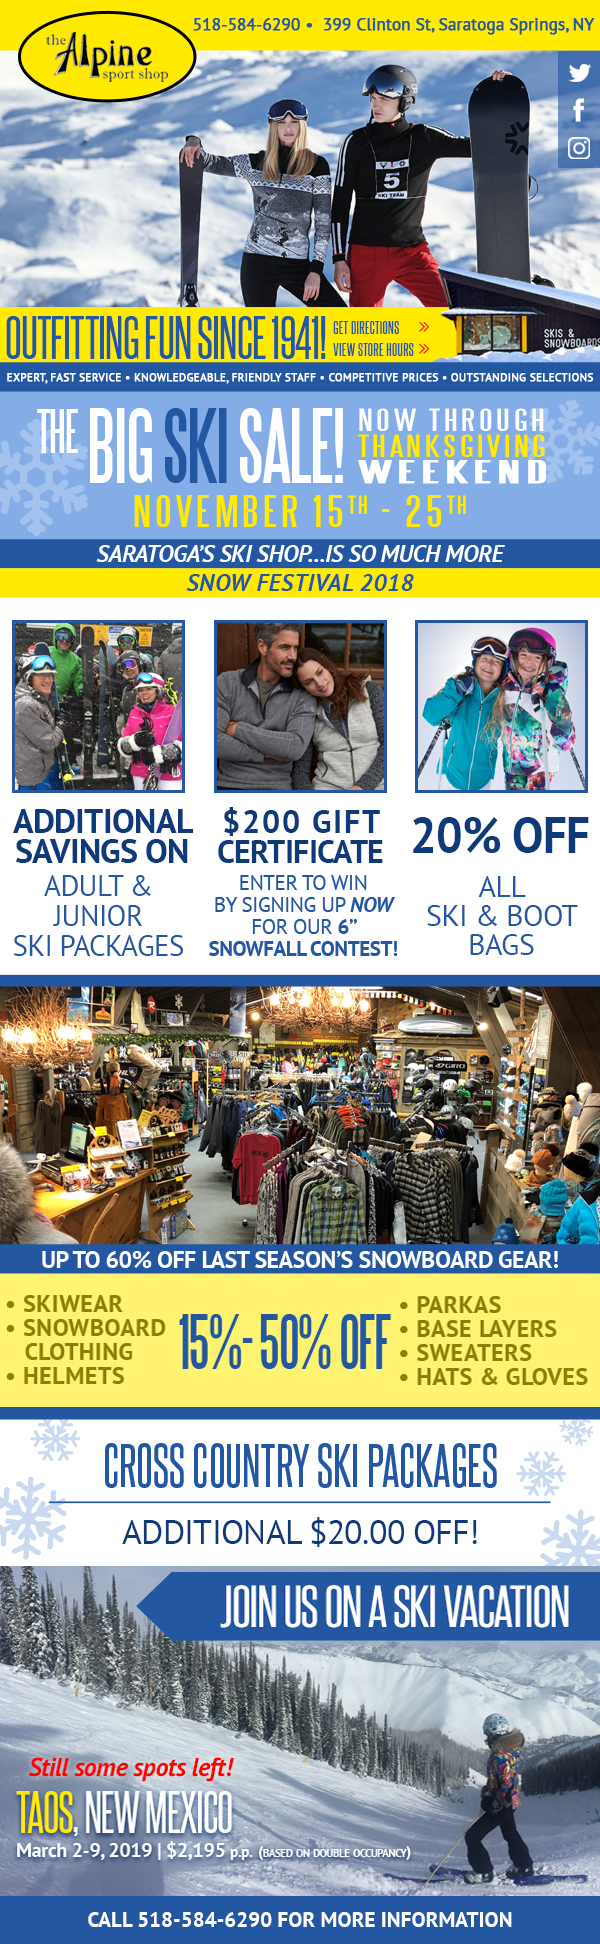 The BIG SKI SALE, November 15 - 25